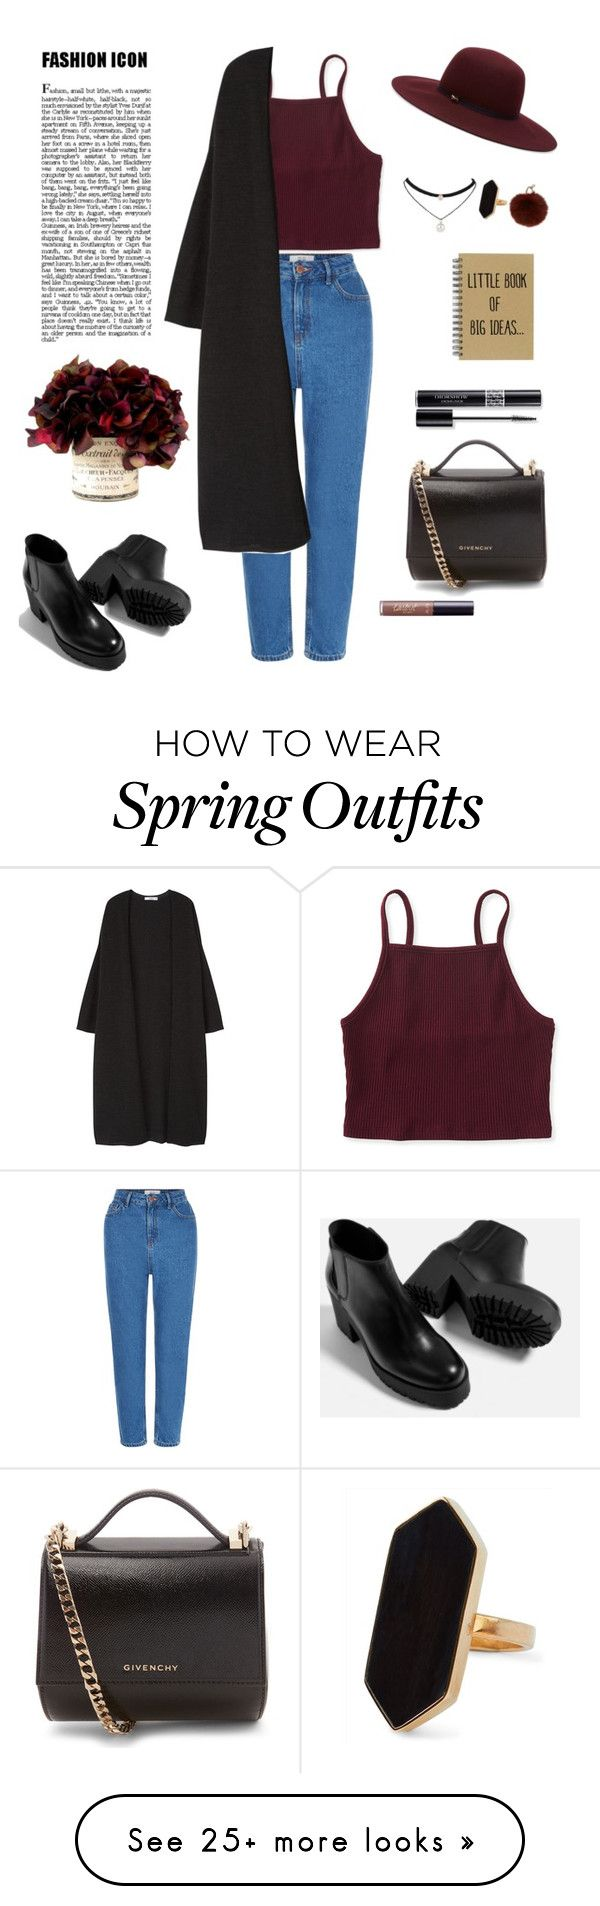 """""""Autumn outfit #autumn #fashion #casualfashion #autumnfashion"""" by daryabartkevich on Polyvore featuring New Look, Aéropostale, MANGO, Piel Leather, Ted Baker, Givenchy, tarte, Christian Dior, Jaeger and Yves Salom"""